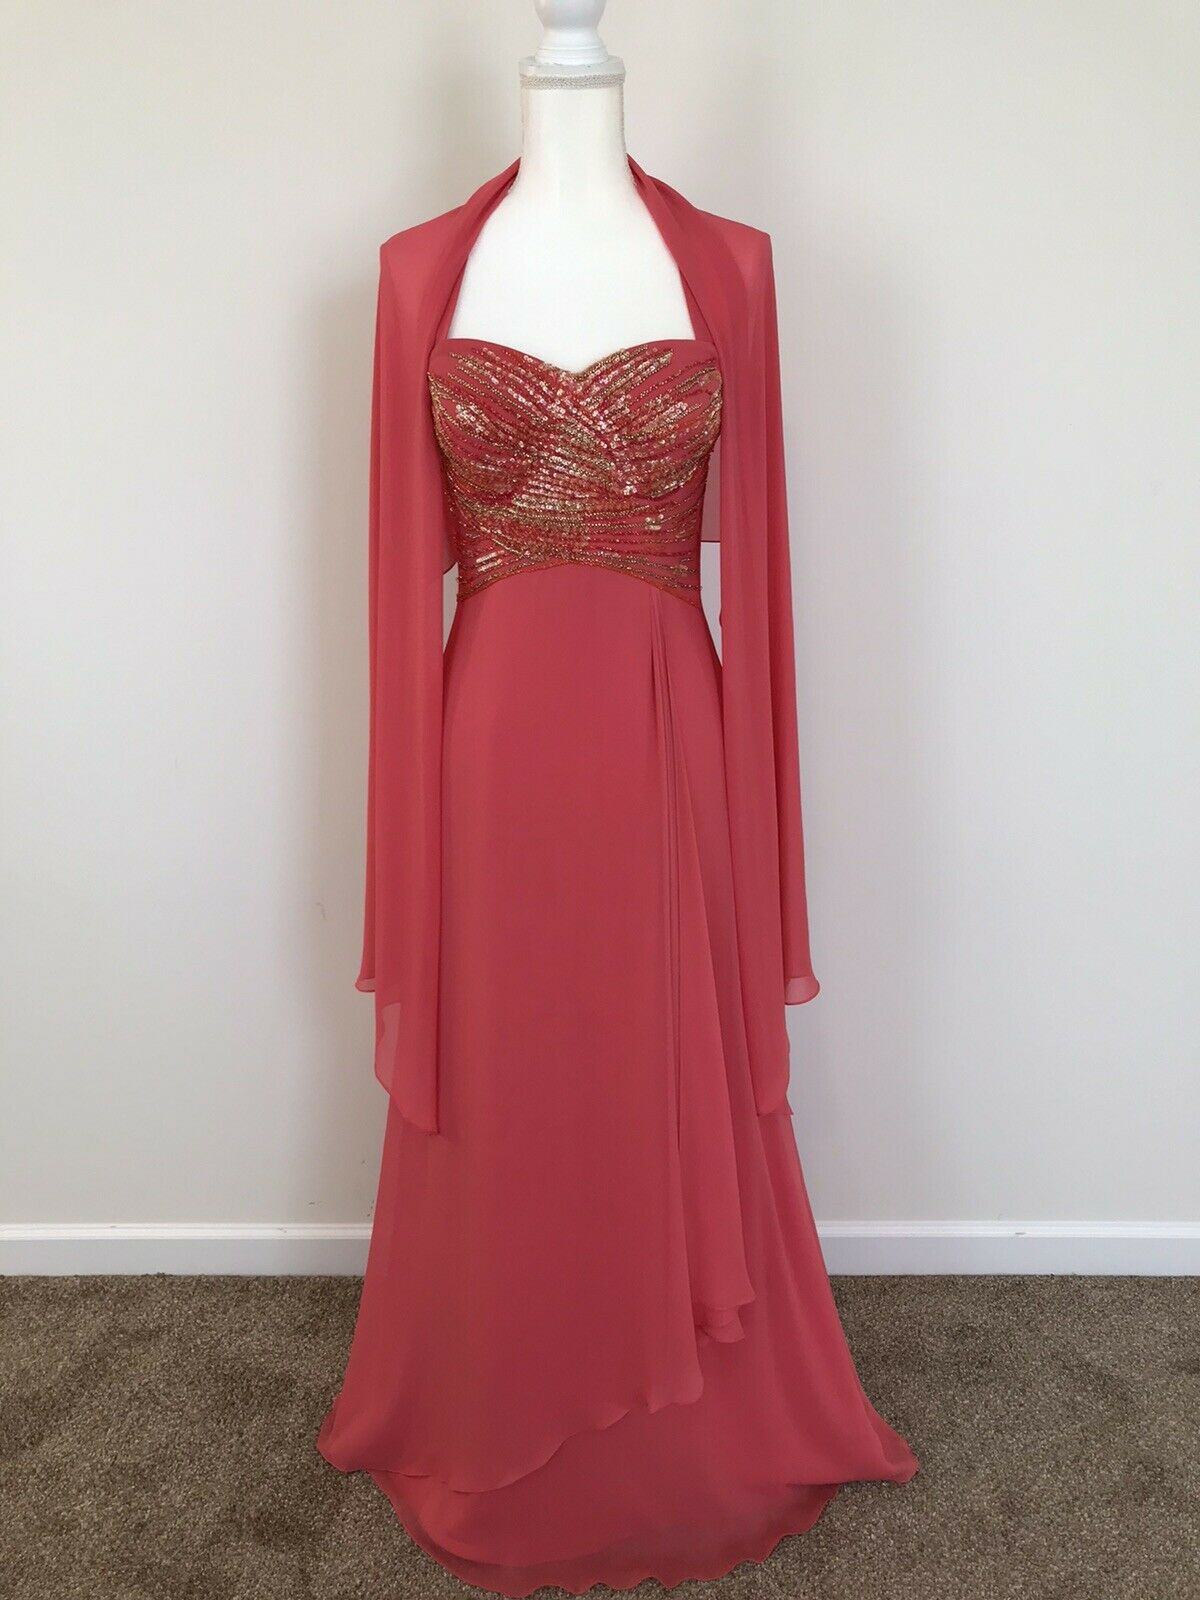 Daymor Couture Coral Silk Chiffon Strapless Beaded Gown and Shawl Size 4